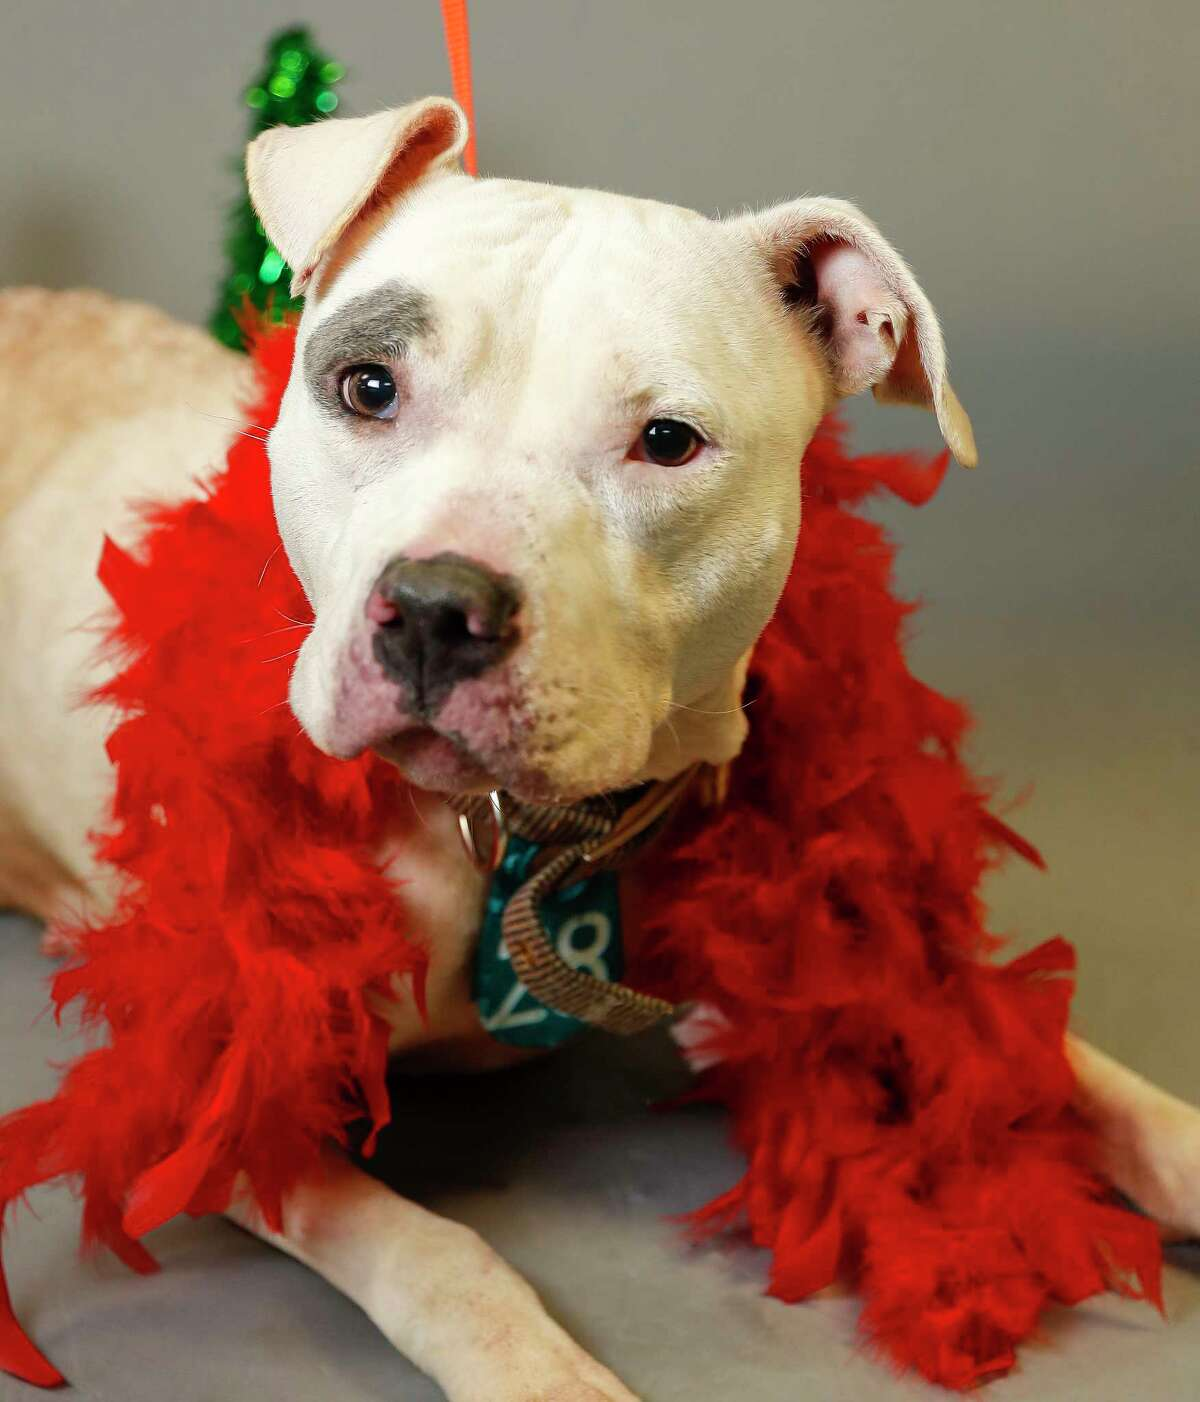 Layla (A547118) is a 3-year-old, female, white/blue Pit Bull mix available for adoption from the Harris County Animal Shelter. Photographed, Monday, Dec. 16, 2019, in Houston. Layla was brought into the shelter by a concerned citizen, who convinced his neighbor to surrender her, and another dog, because they were being neglected. Layla and her friend, Queen were not being cared or fed. Layla is very outgoing and sweet. Loves treats and attention.